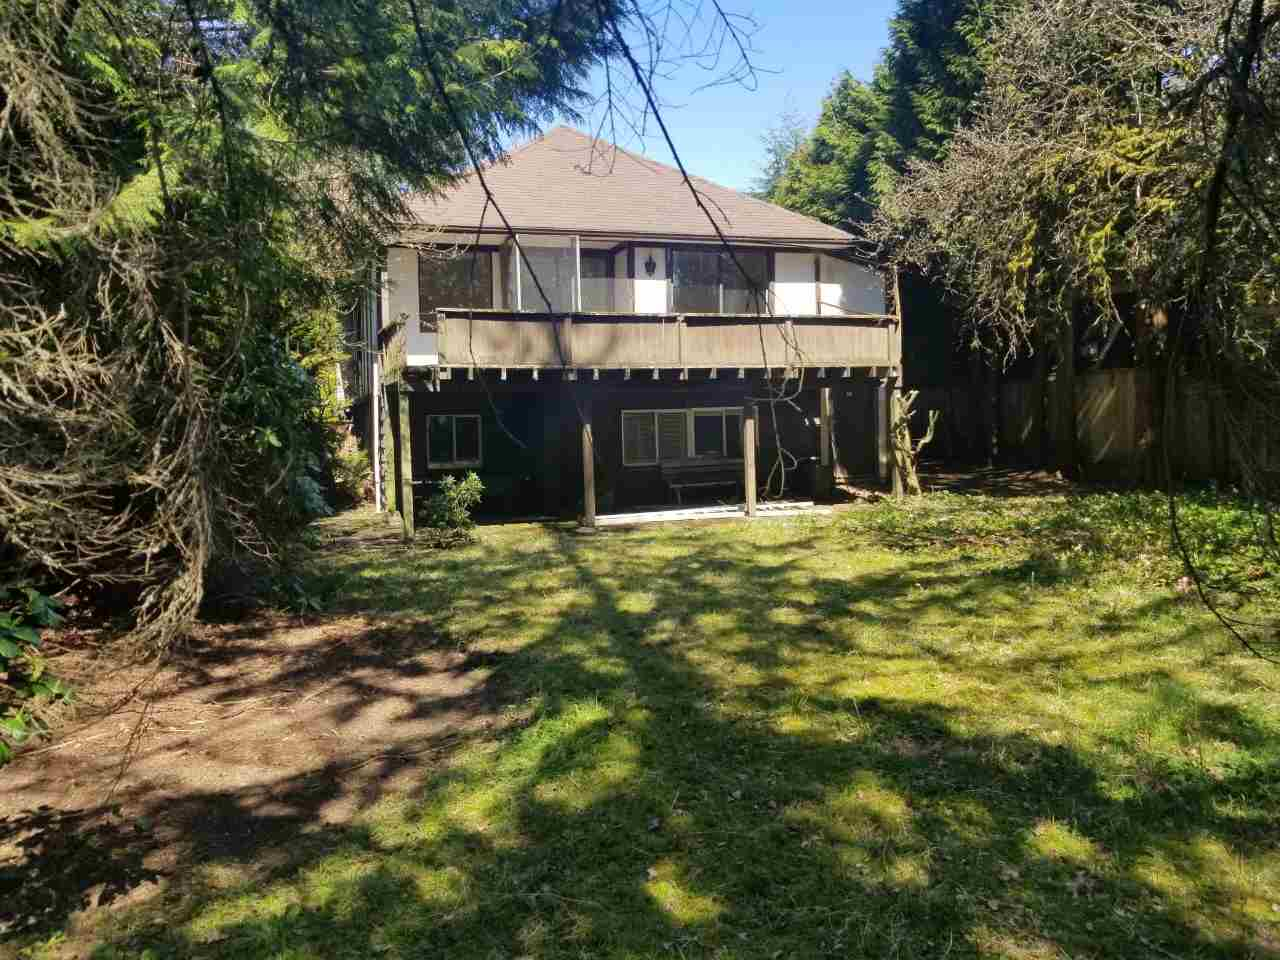 293 W WINDSOR ROAD - Upper Lonsdale House/Single Family for sale, 3 Bedrooms (R2571088) - #2